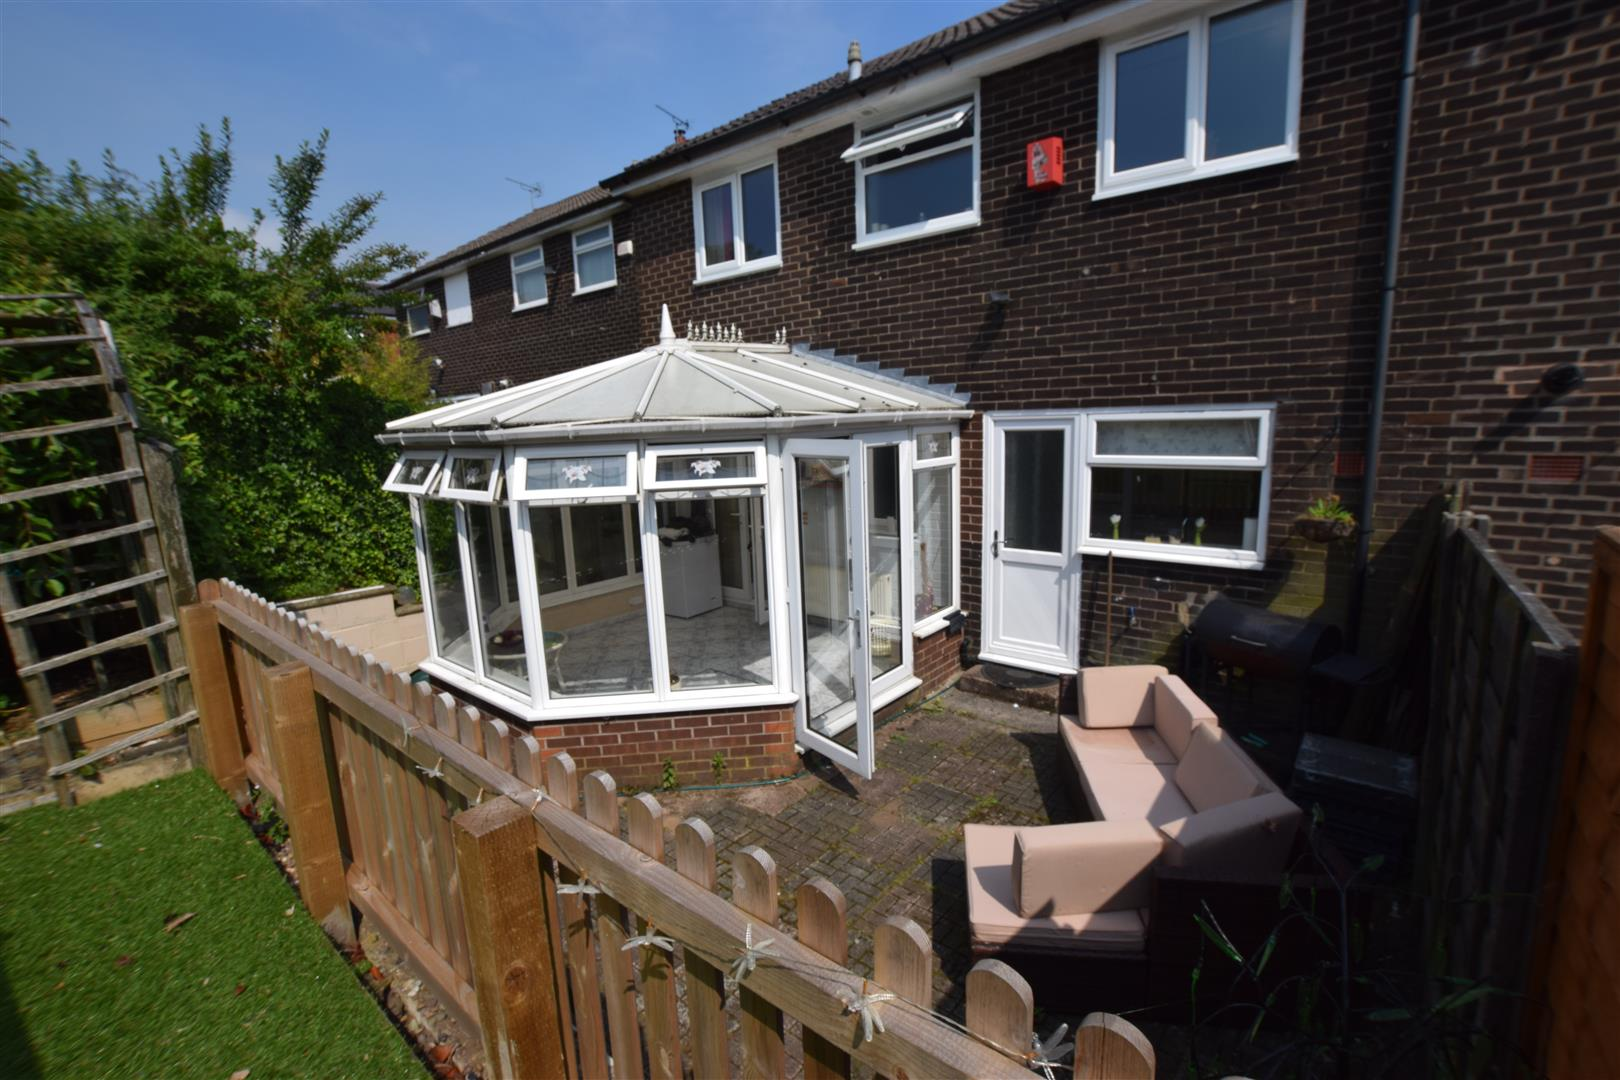 4 Bedrooms House for sale in Avon Road, Heywood